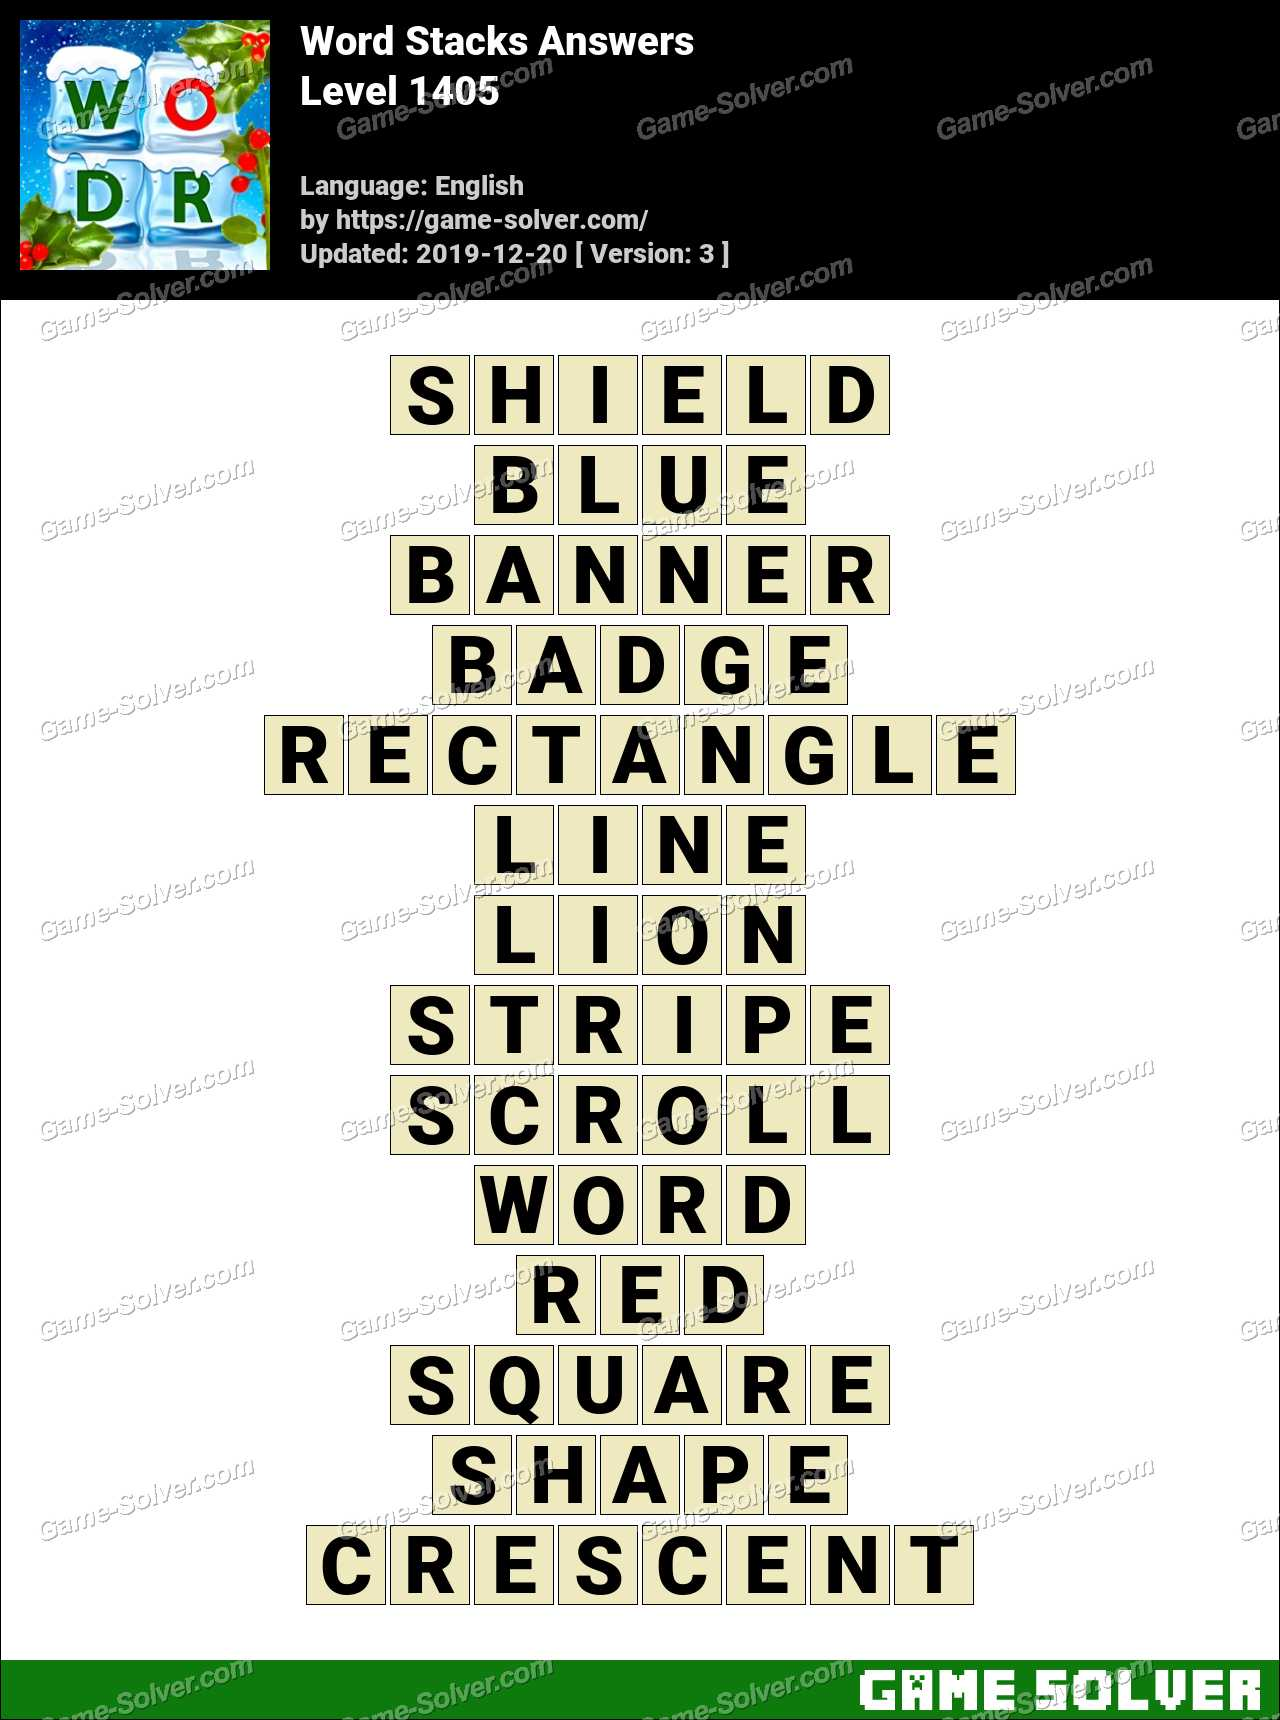 Word Stacks Level 1405 Answers